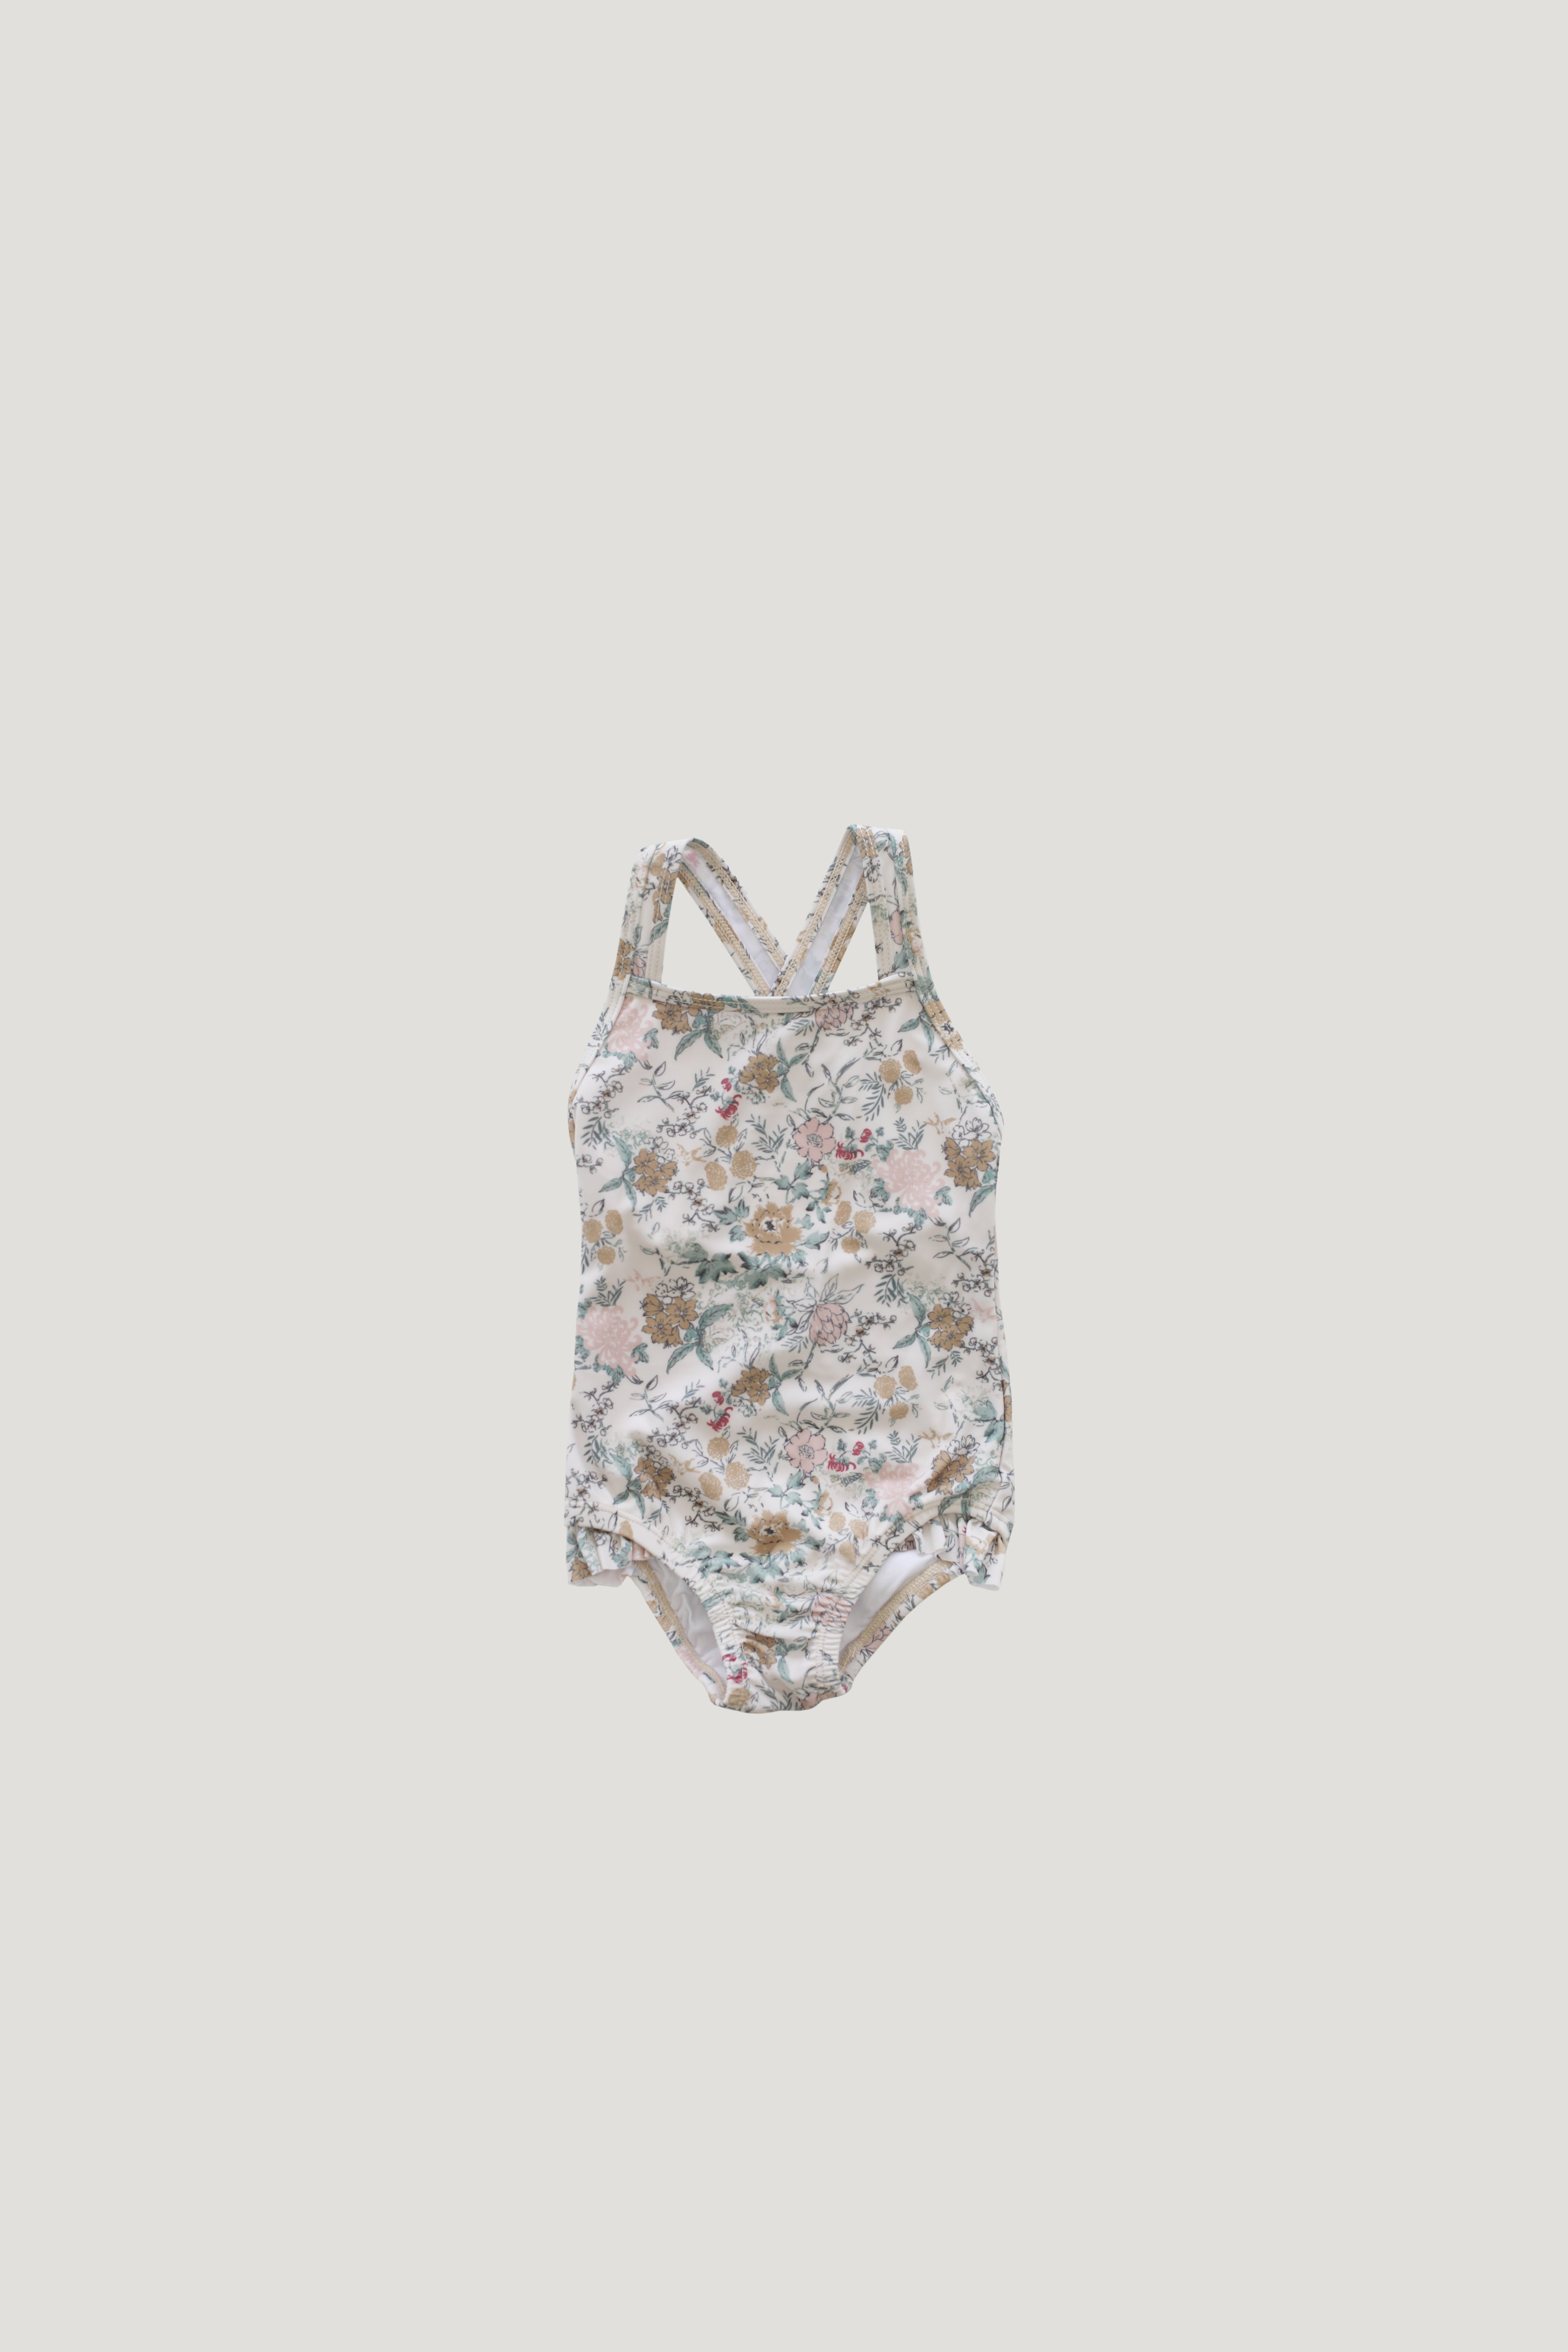 Jamie Kay Swim Everly Swimsuit - Wild Floral